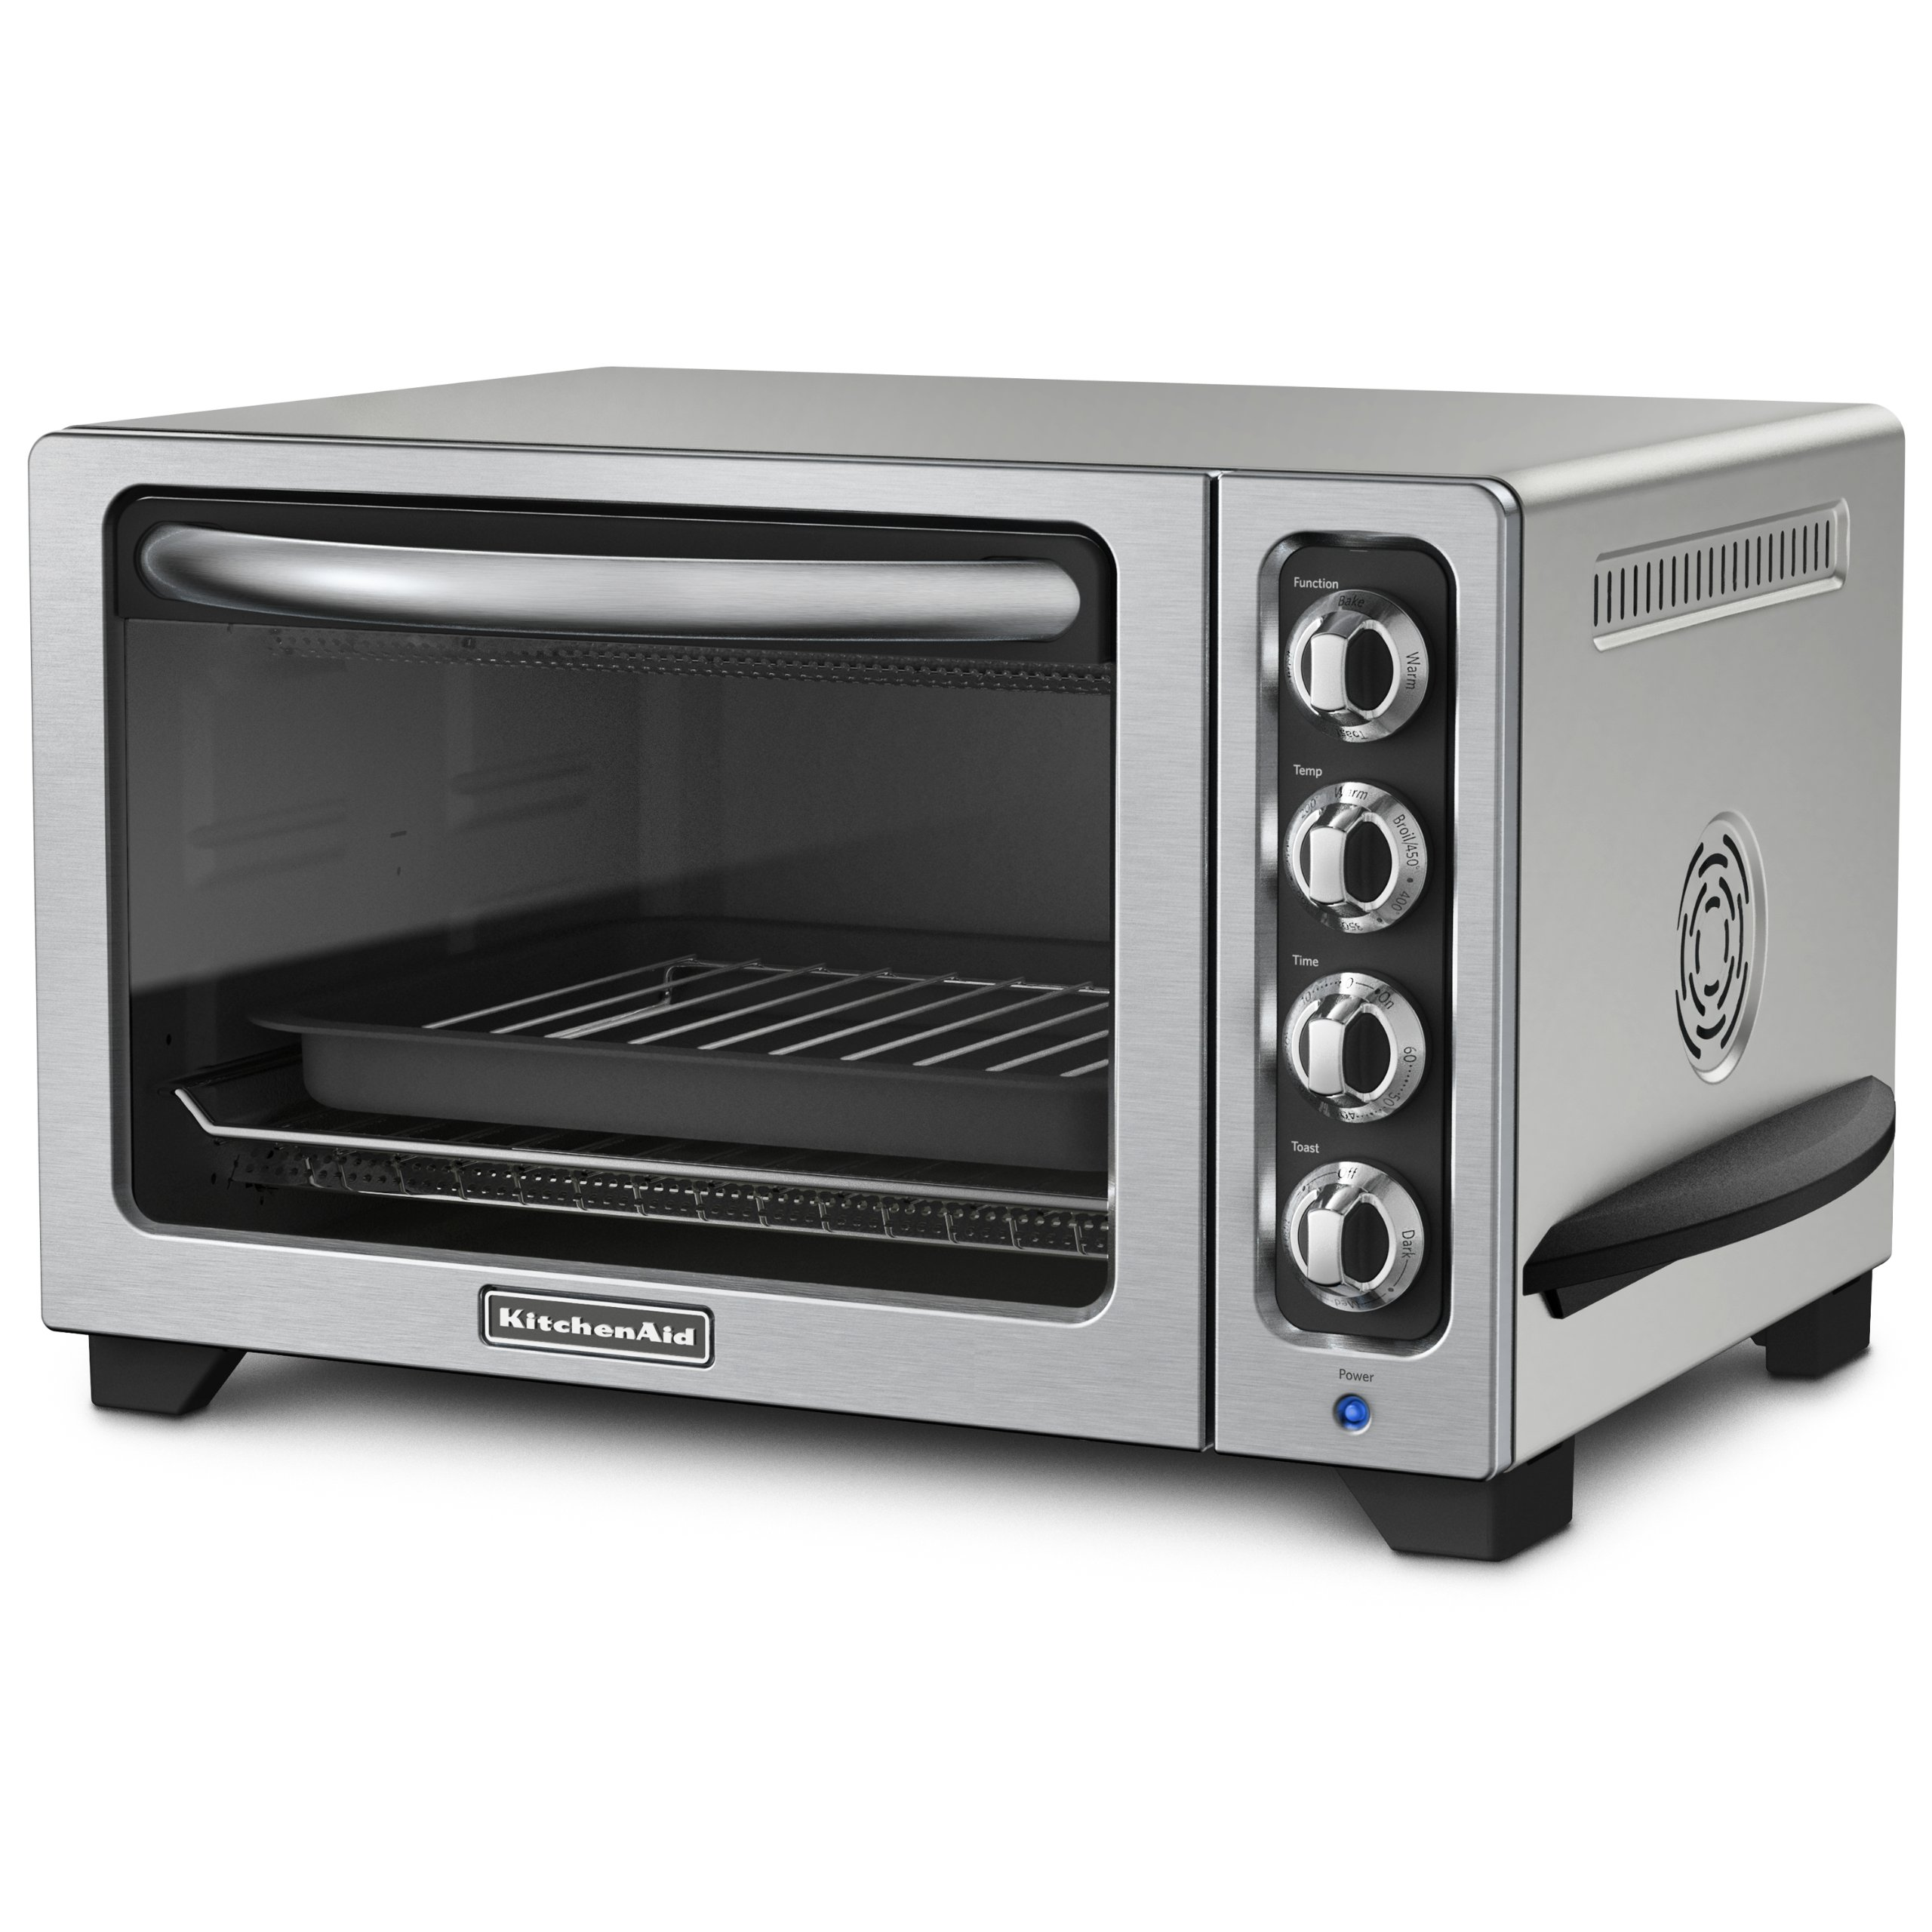 KitchenAid KCO223CU 12-Inch Convection Countertop Oven with Silver Handle, Contour Silver